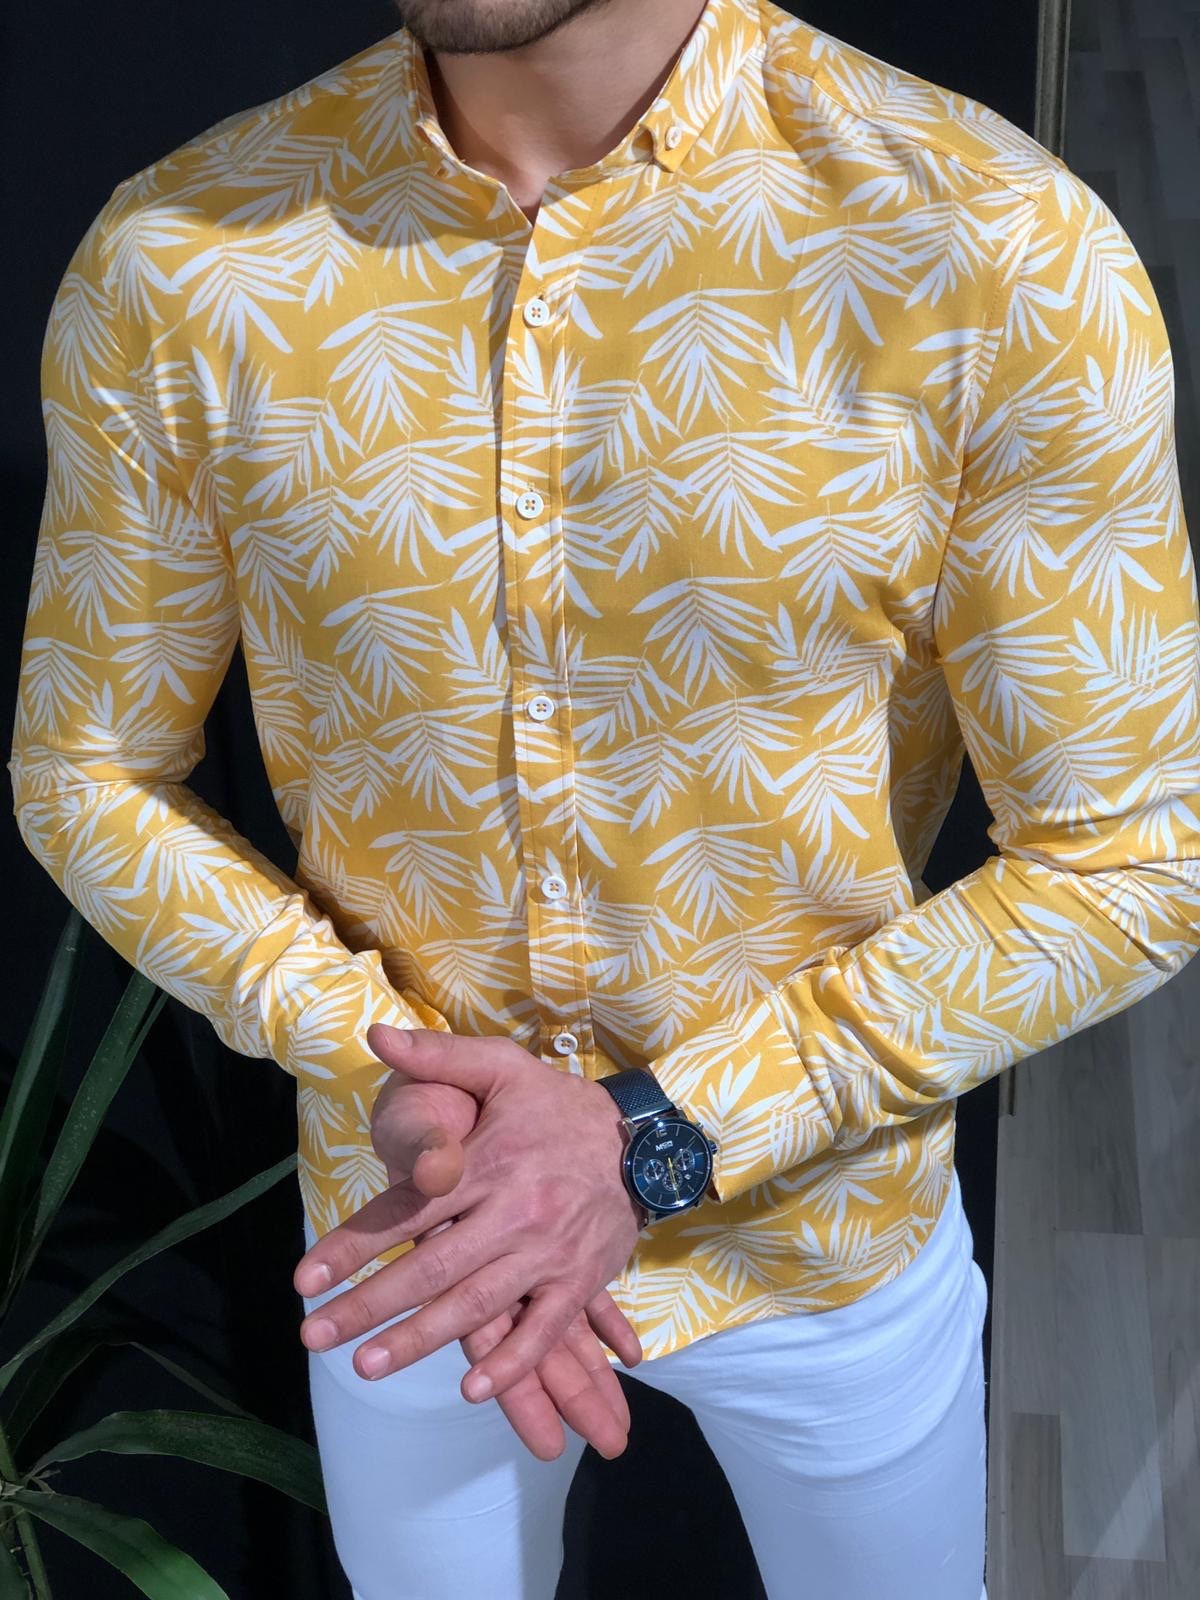 Klenoff Slim-Fit Patterned Shirt (3 Colors)